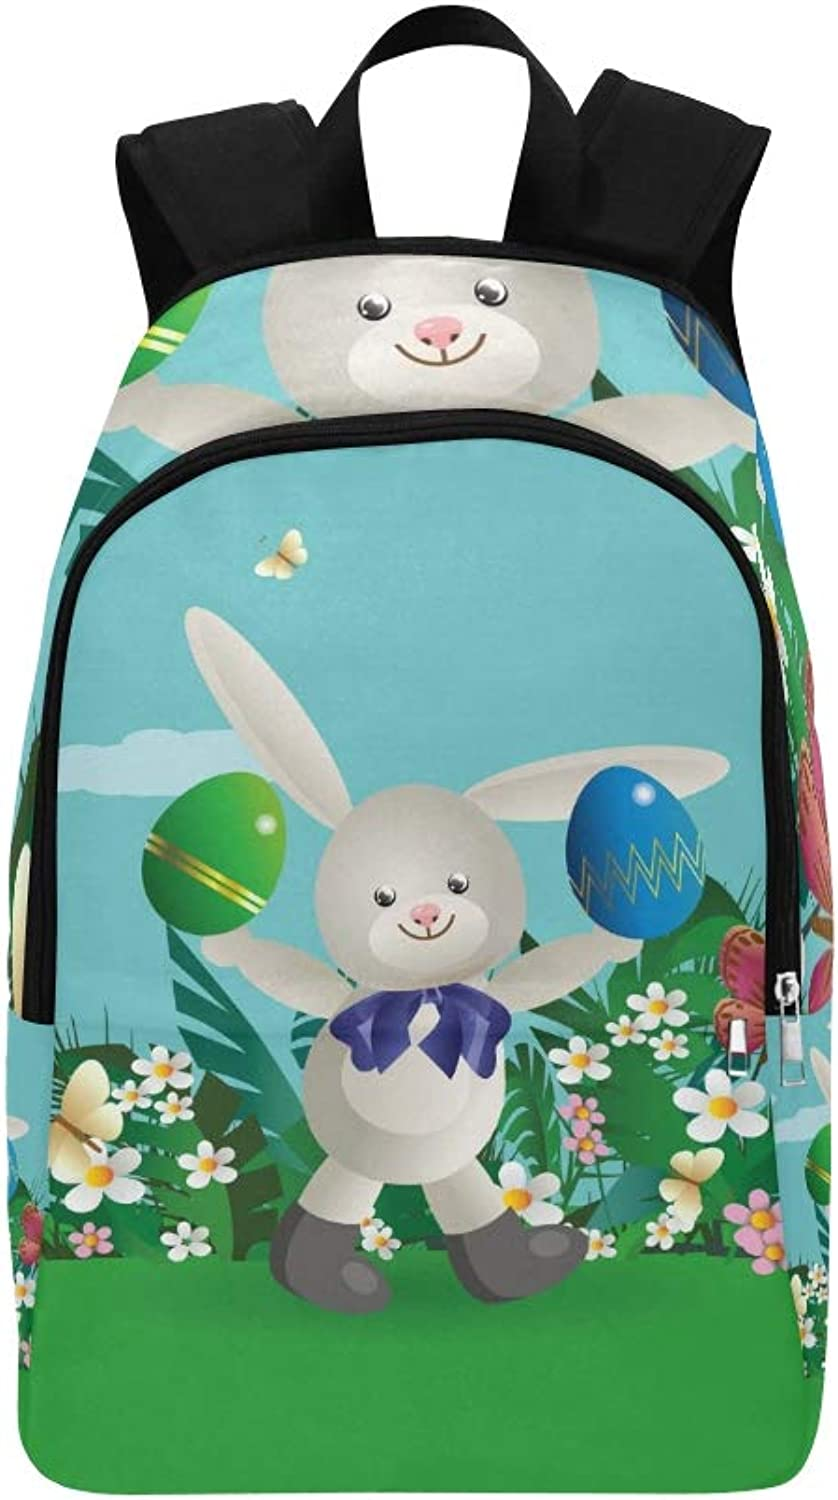 Easter Bunny 5 Casual Daypack Travel Bag College School Backpack for Mens and Women